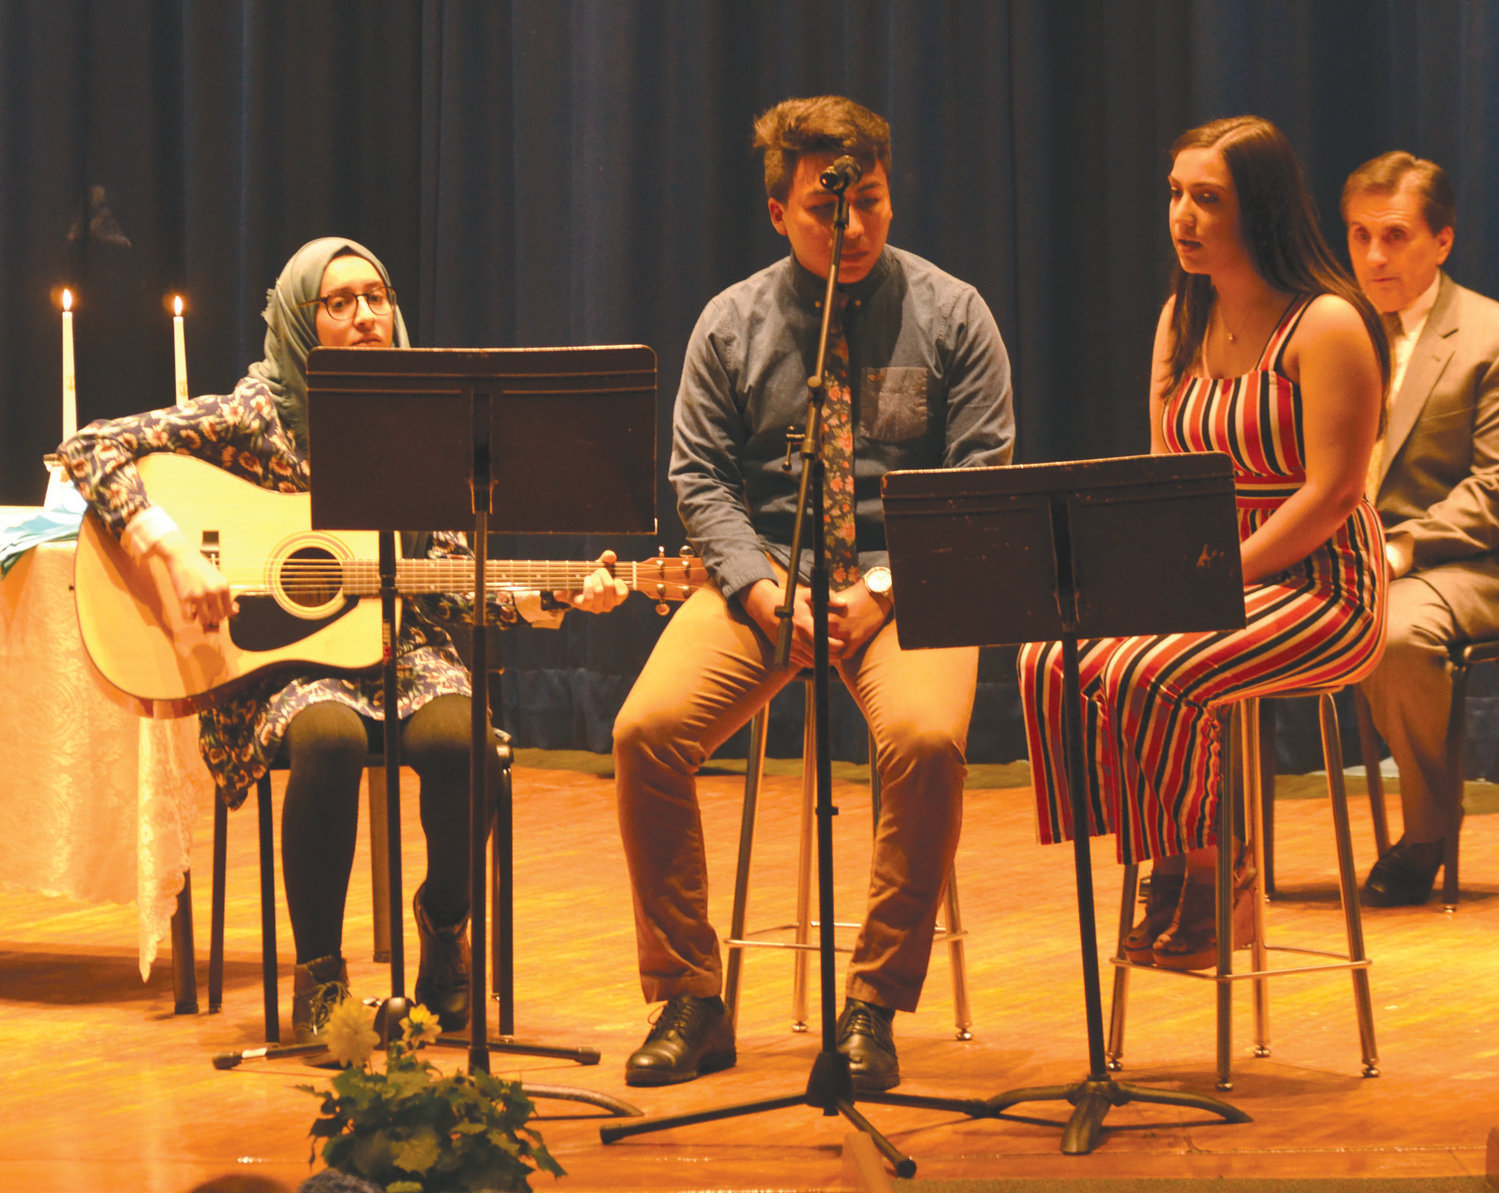 Haya Abaherah, Daniel Cambranes and Isabella Parrillo performed a musical selection.